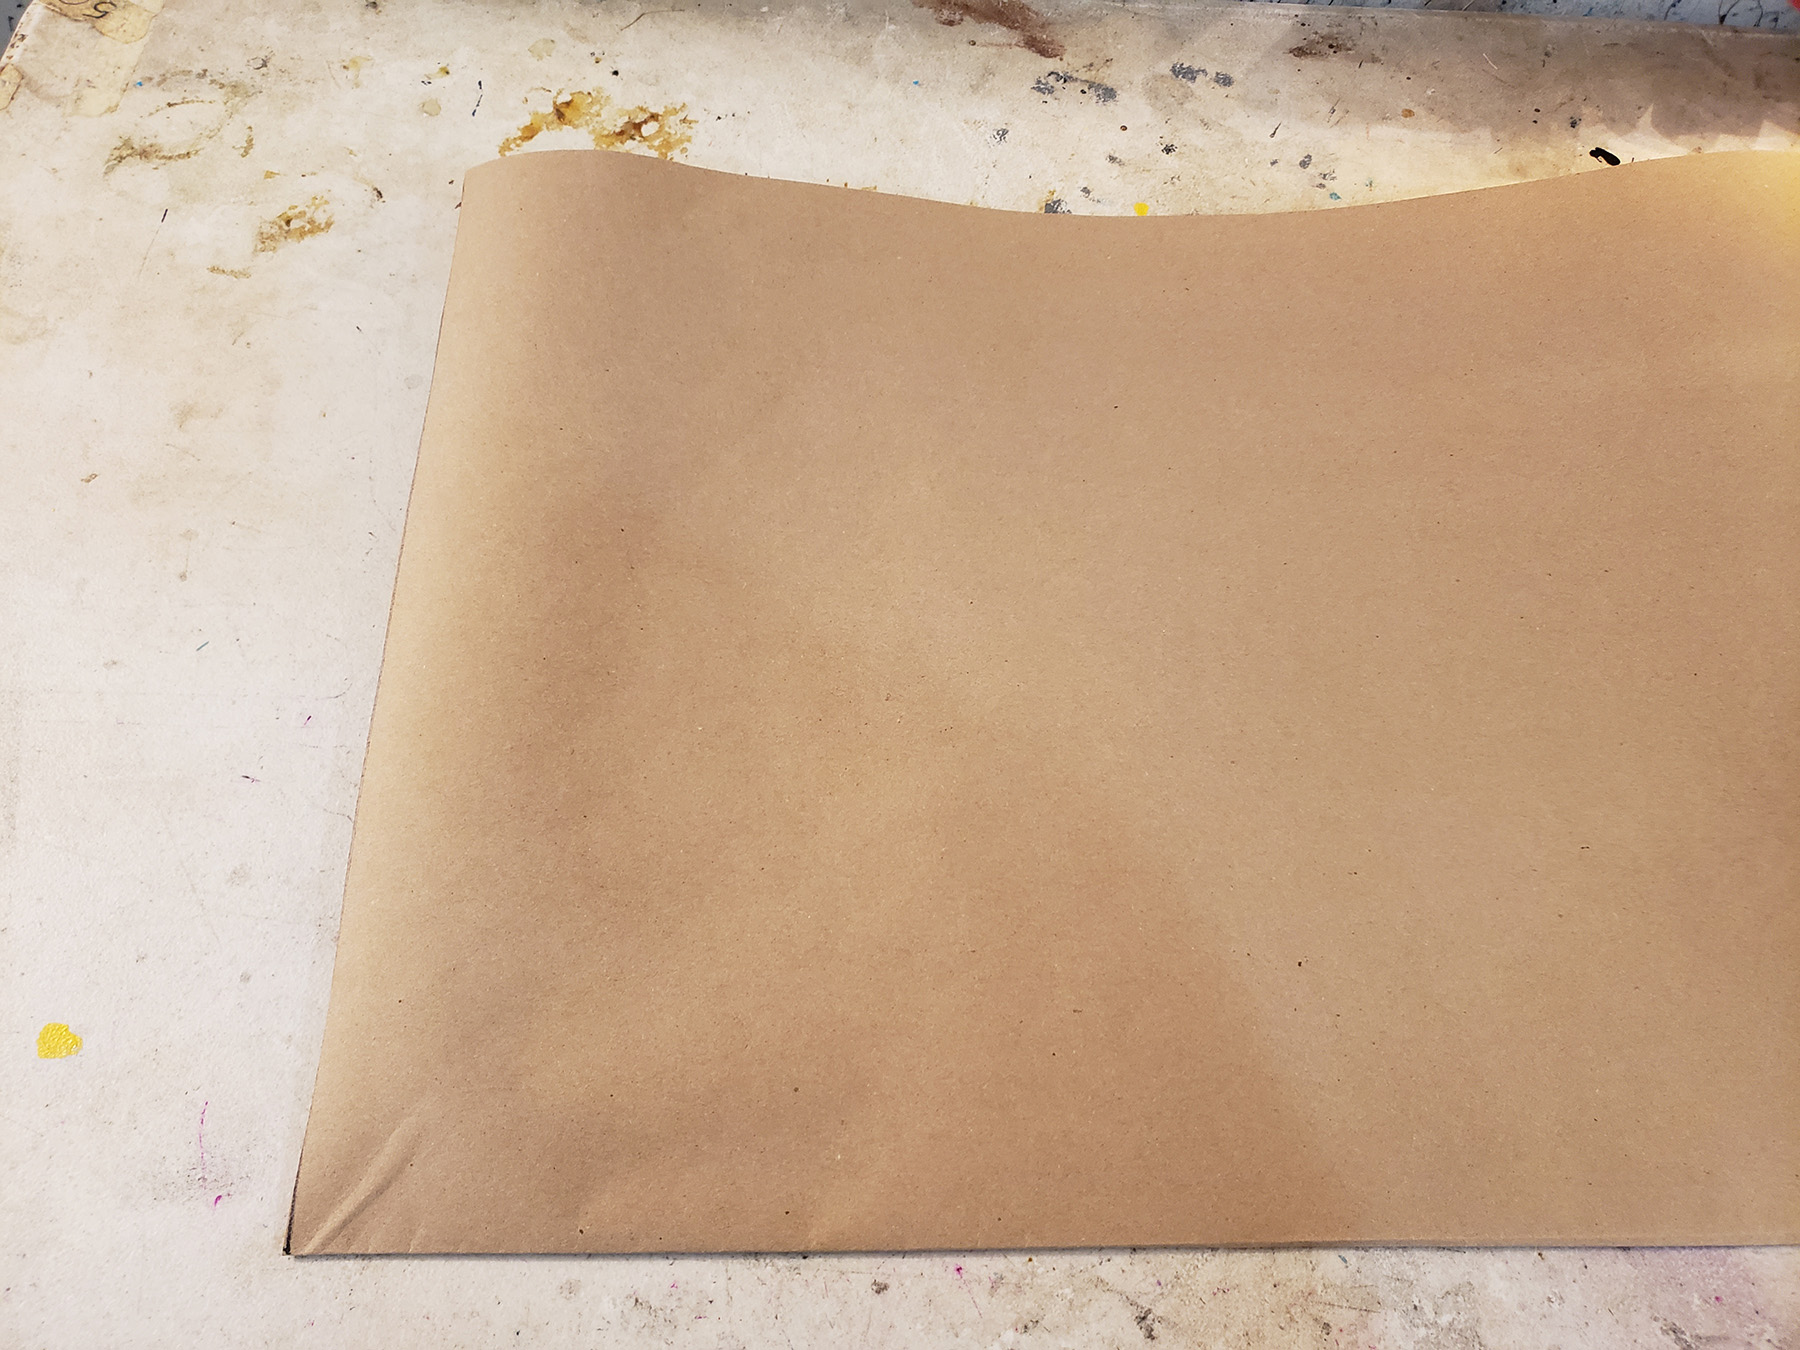 A large piece of brown craft paper on a work table.